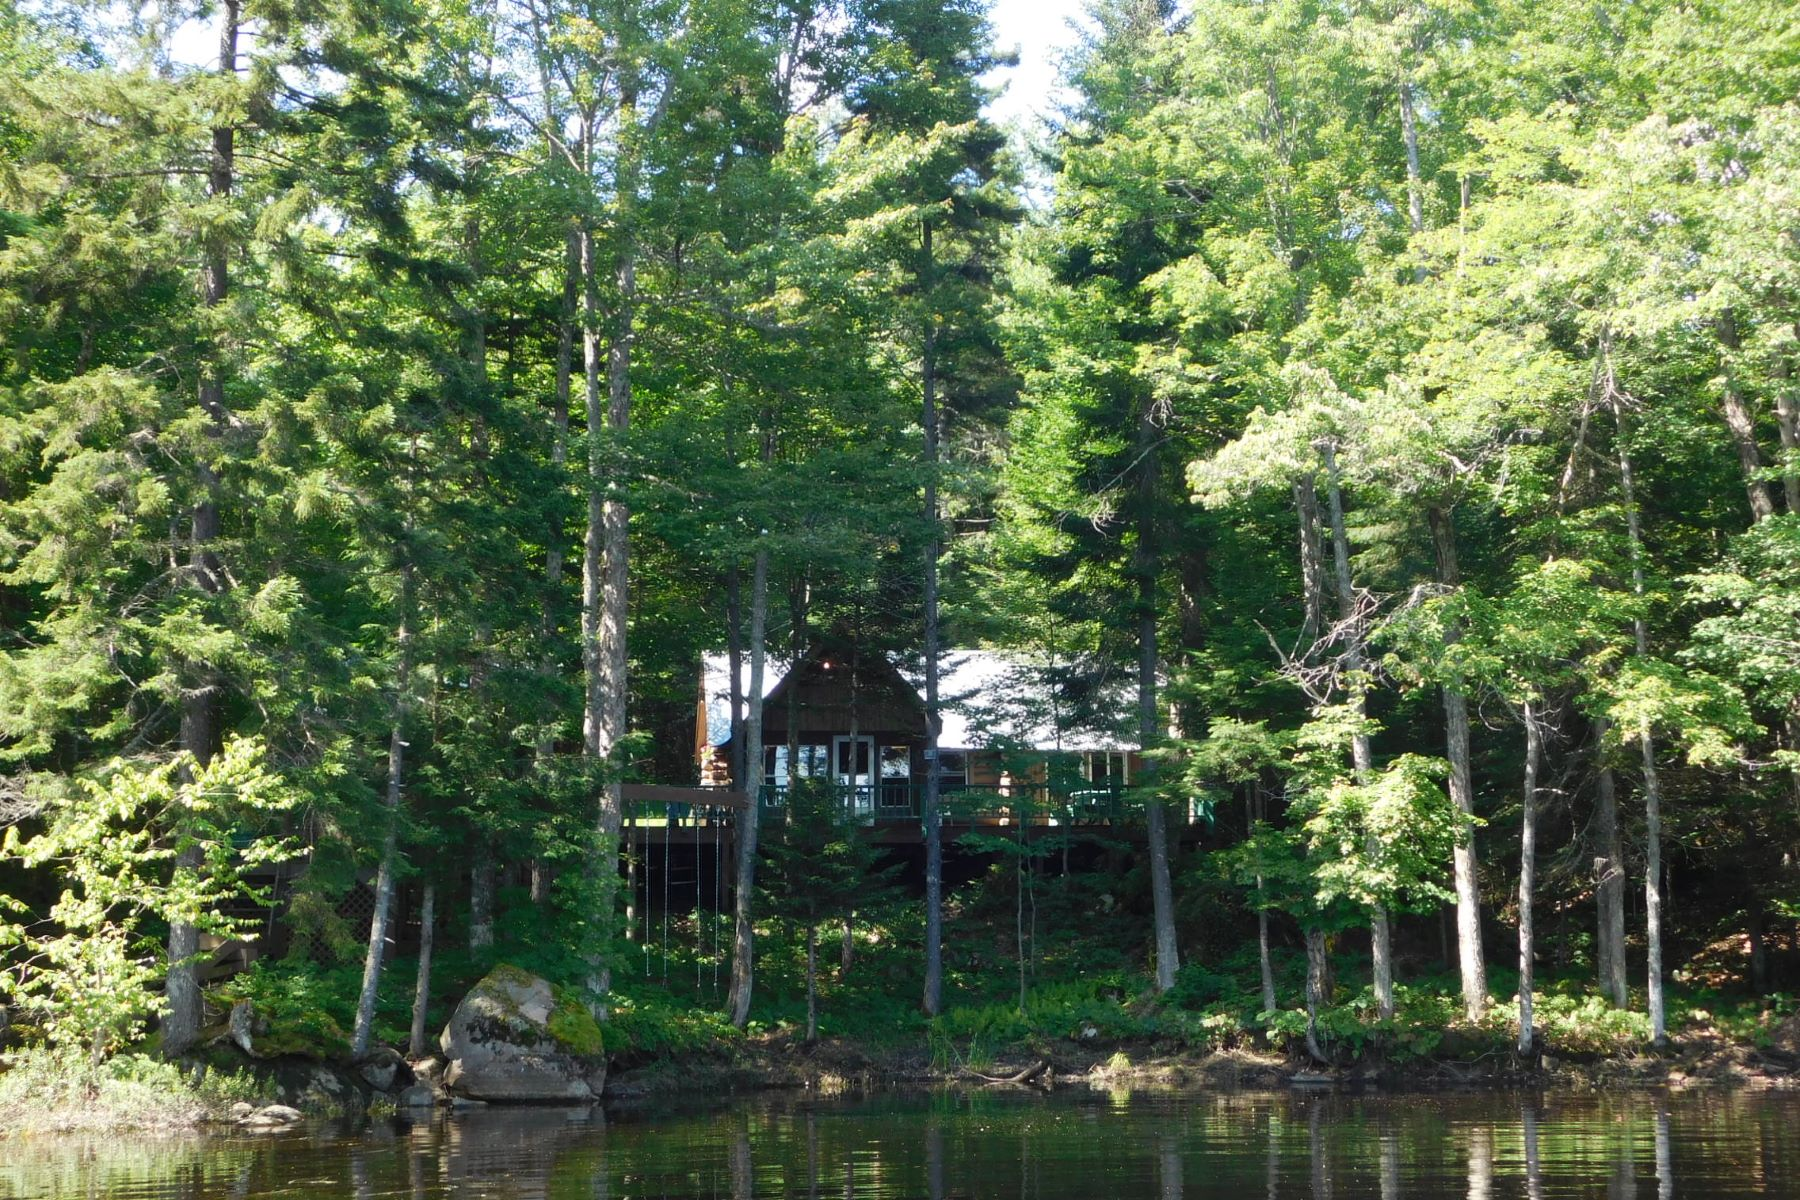 Casa para uma família para Venda às Secluded Cabin and 32 acres with unparalleled views of Stillwater Reservoir 3960 Big Moose Rd Big Moose, Nova York 13331 Estados Unidos